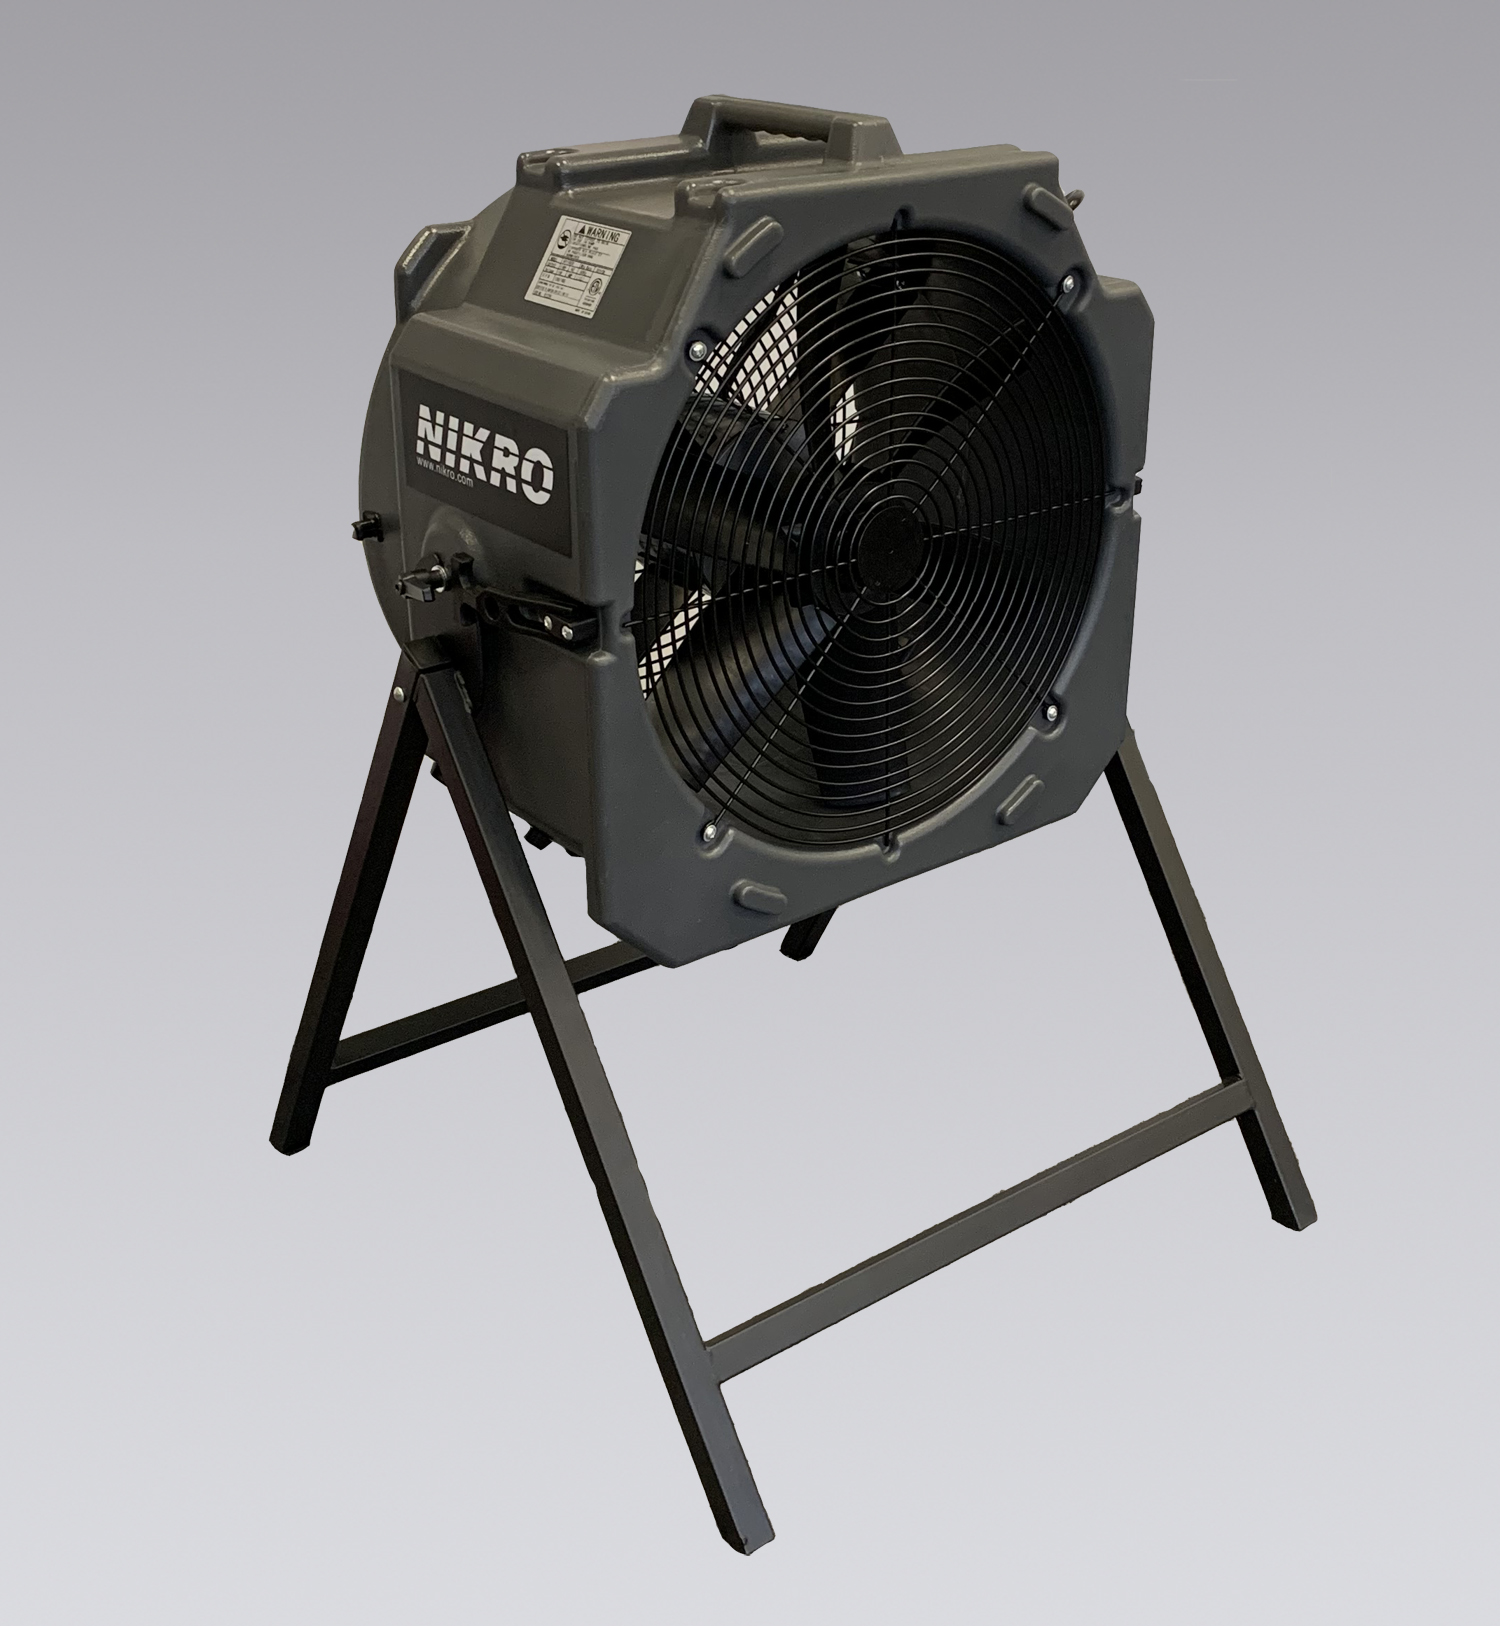 NIKRO 862352 - Axial Fan Stand - Mold-Flood Remediation Equipment 